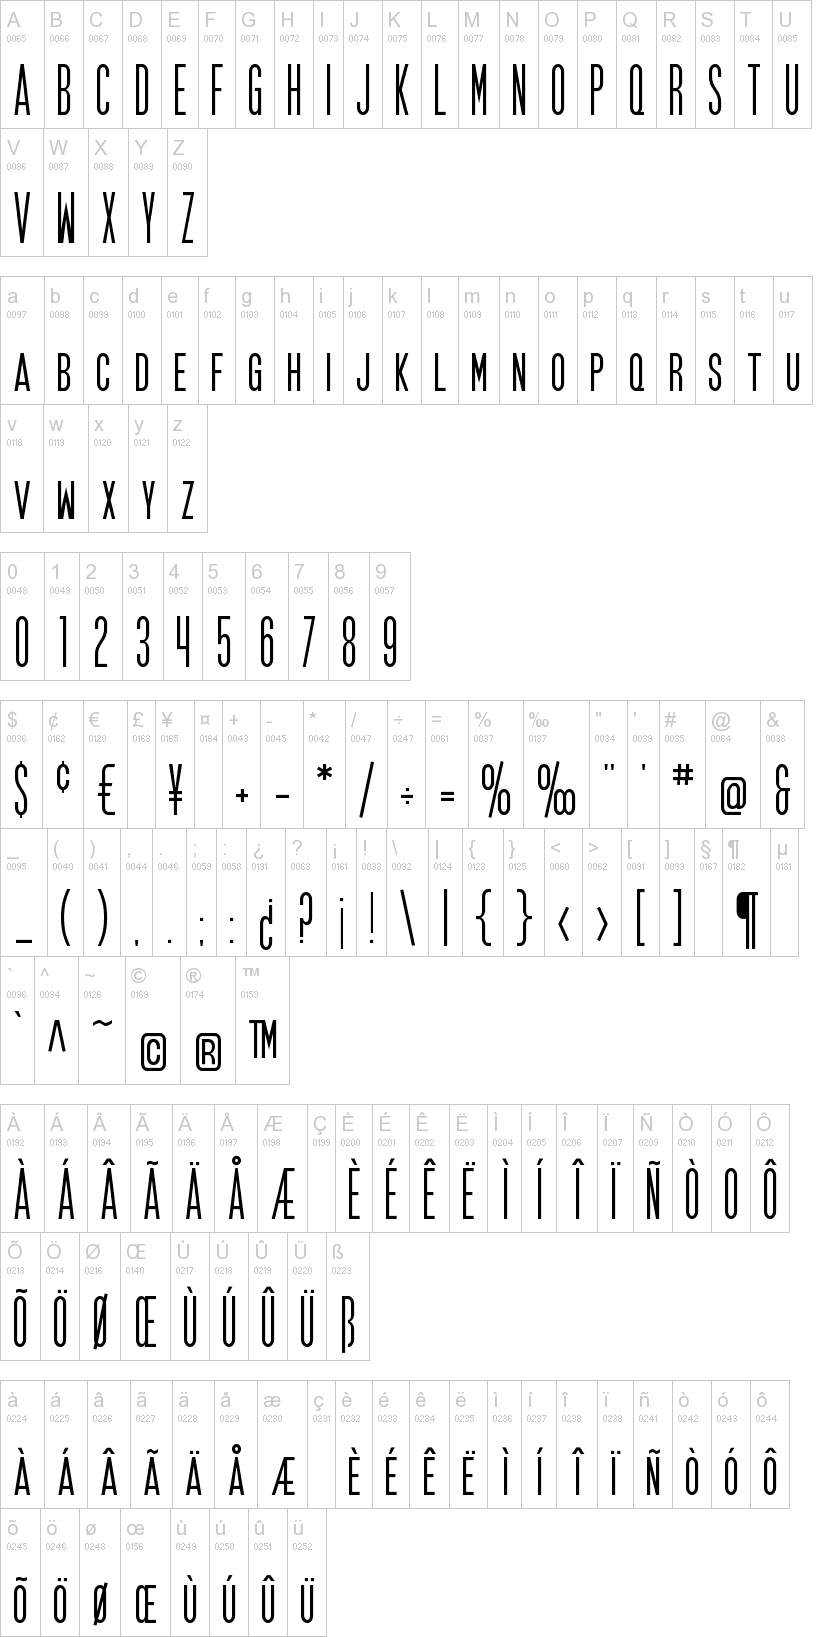 Fonts 1 - 10 of 22